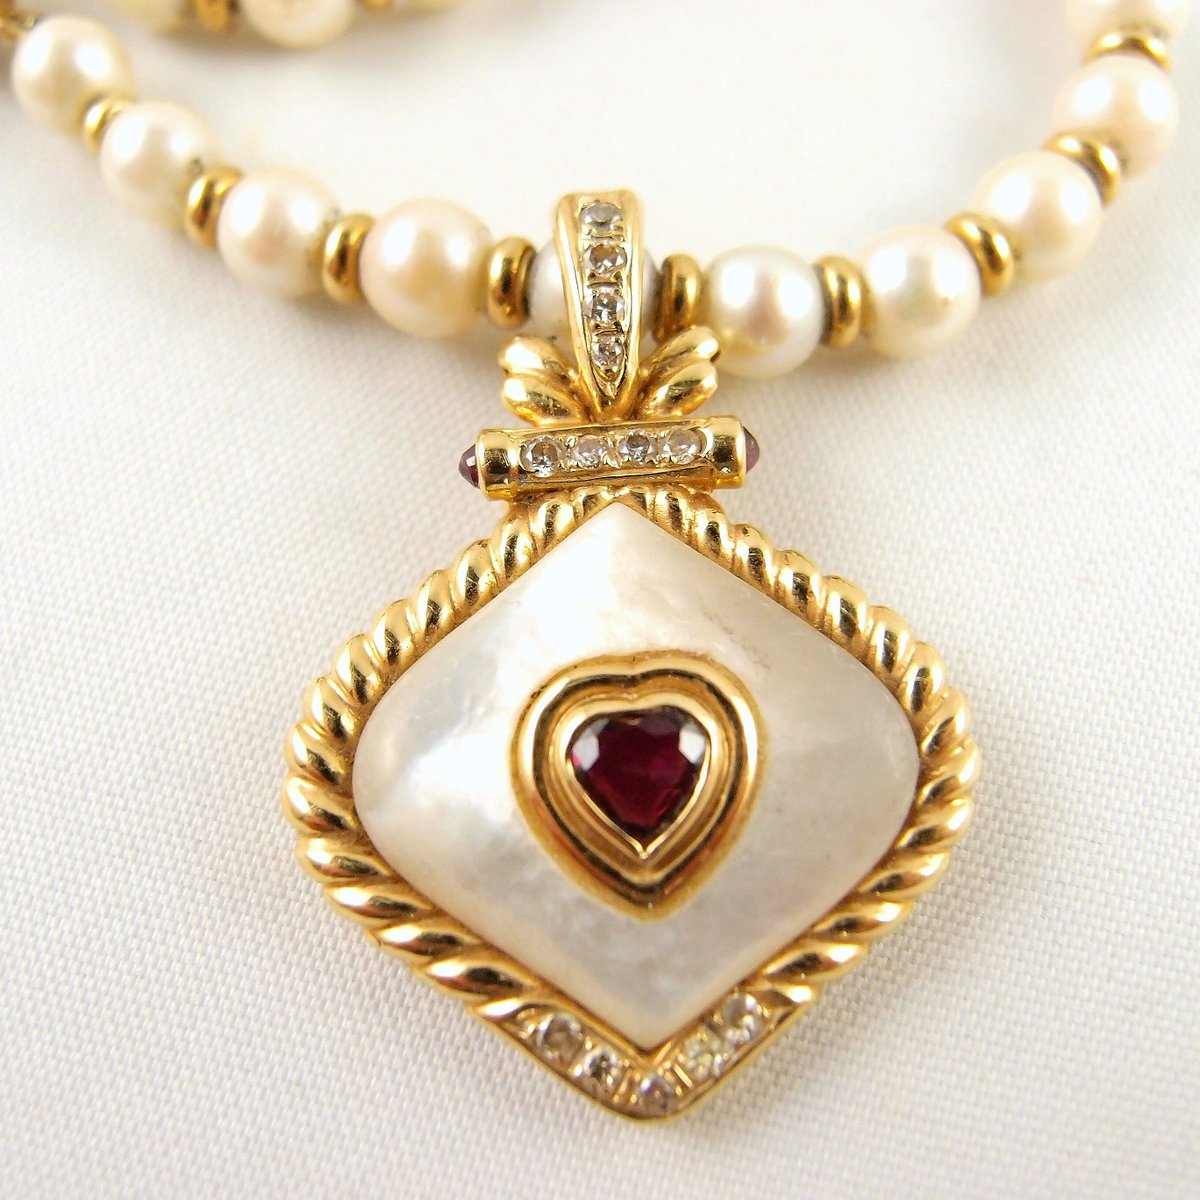 The beauty of pearls combined with gemstones and gold #pearlsofinstagram Estate #pearlnecklace with alternating #18Ksolidgold beads #Removablependant #Rubypendant and #diamondpendant http://ow.ly/1bzh30oTdQM pic.twitter.com/NXoIOPFtc7